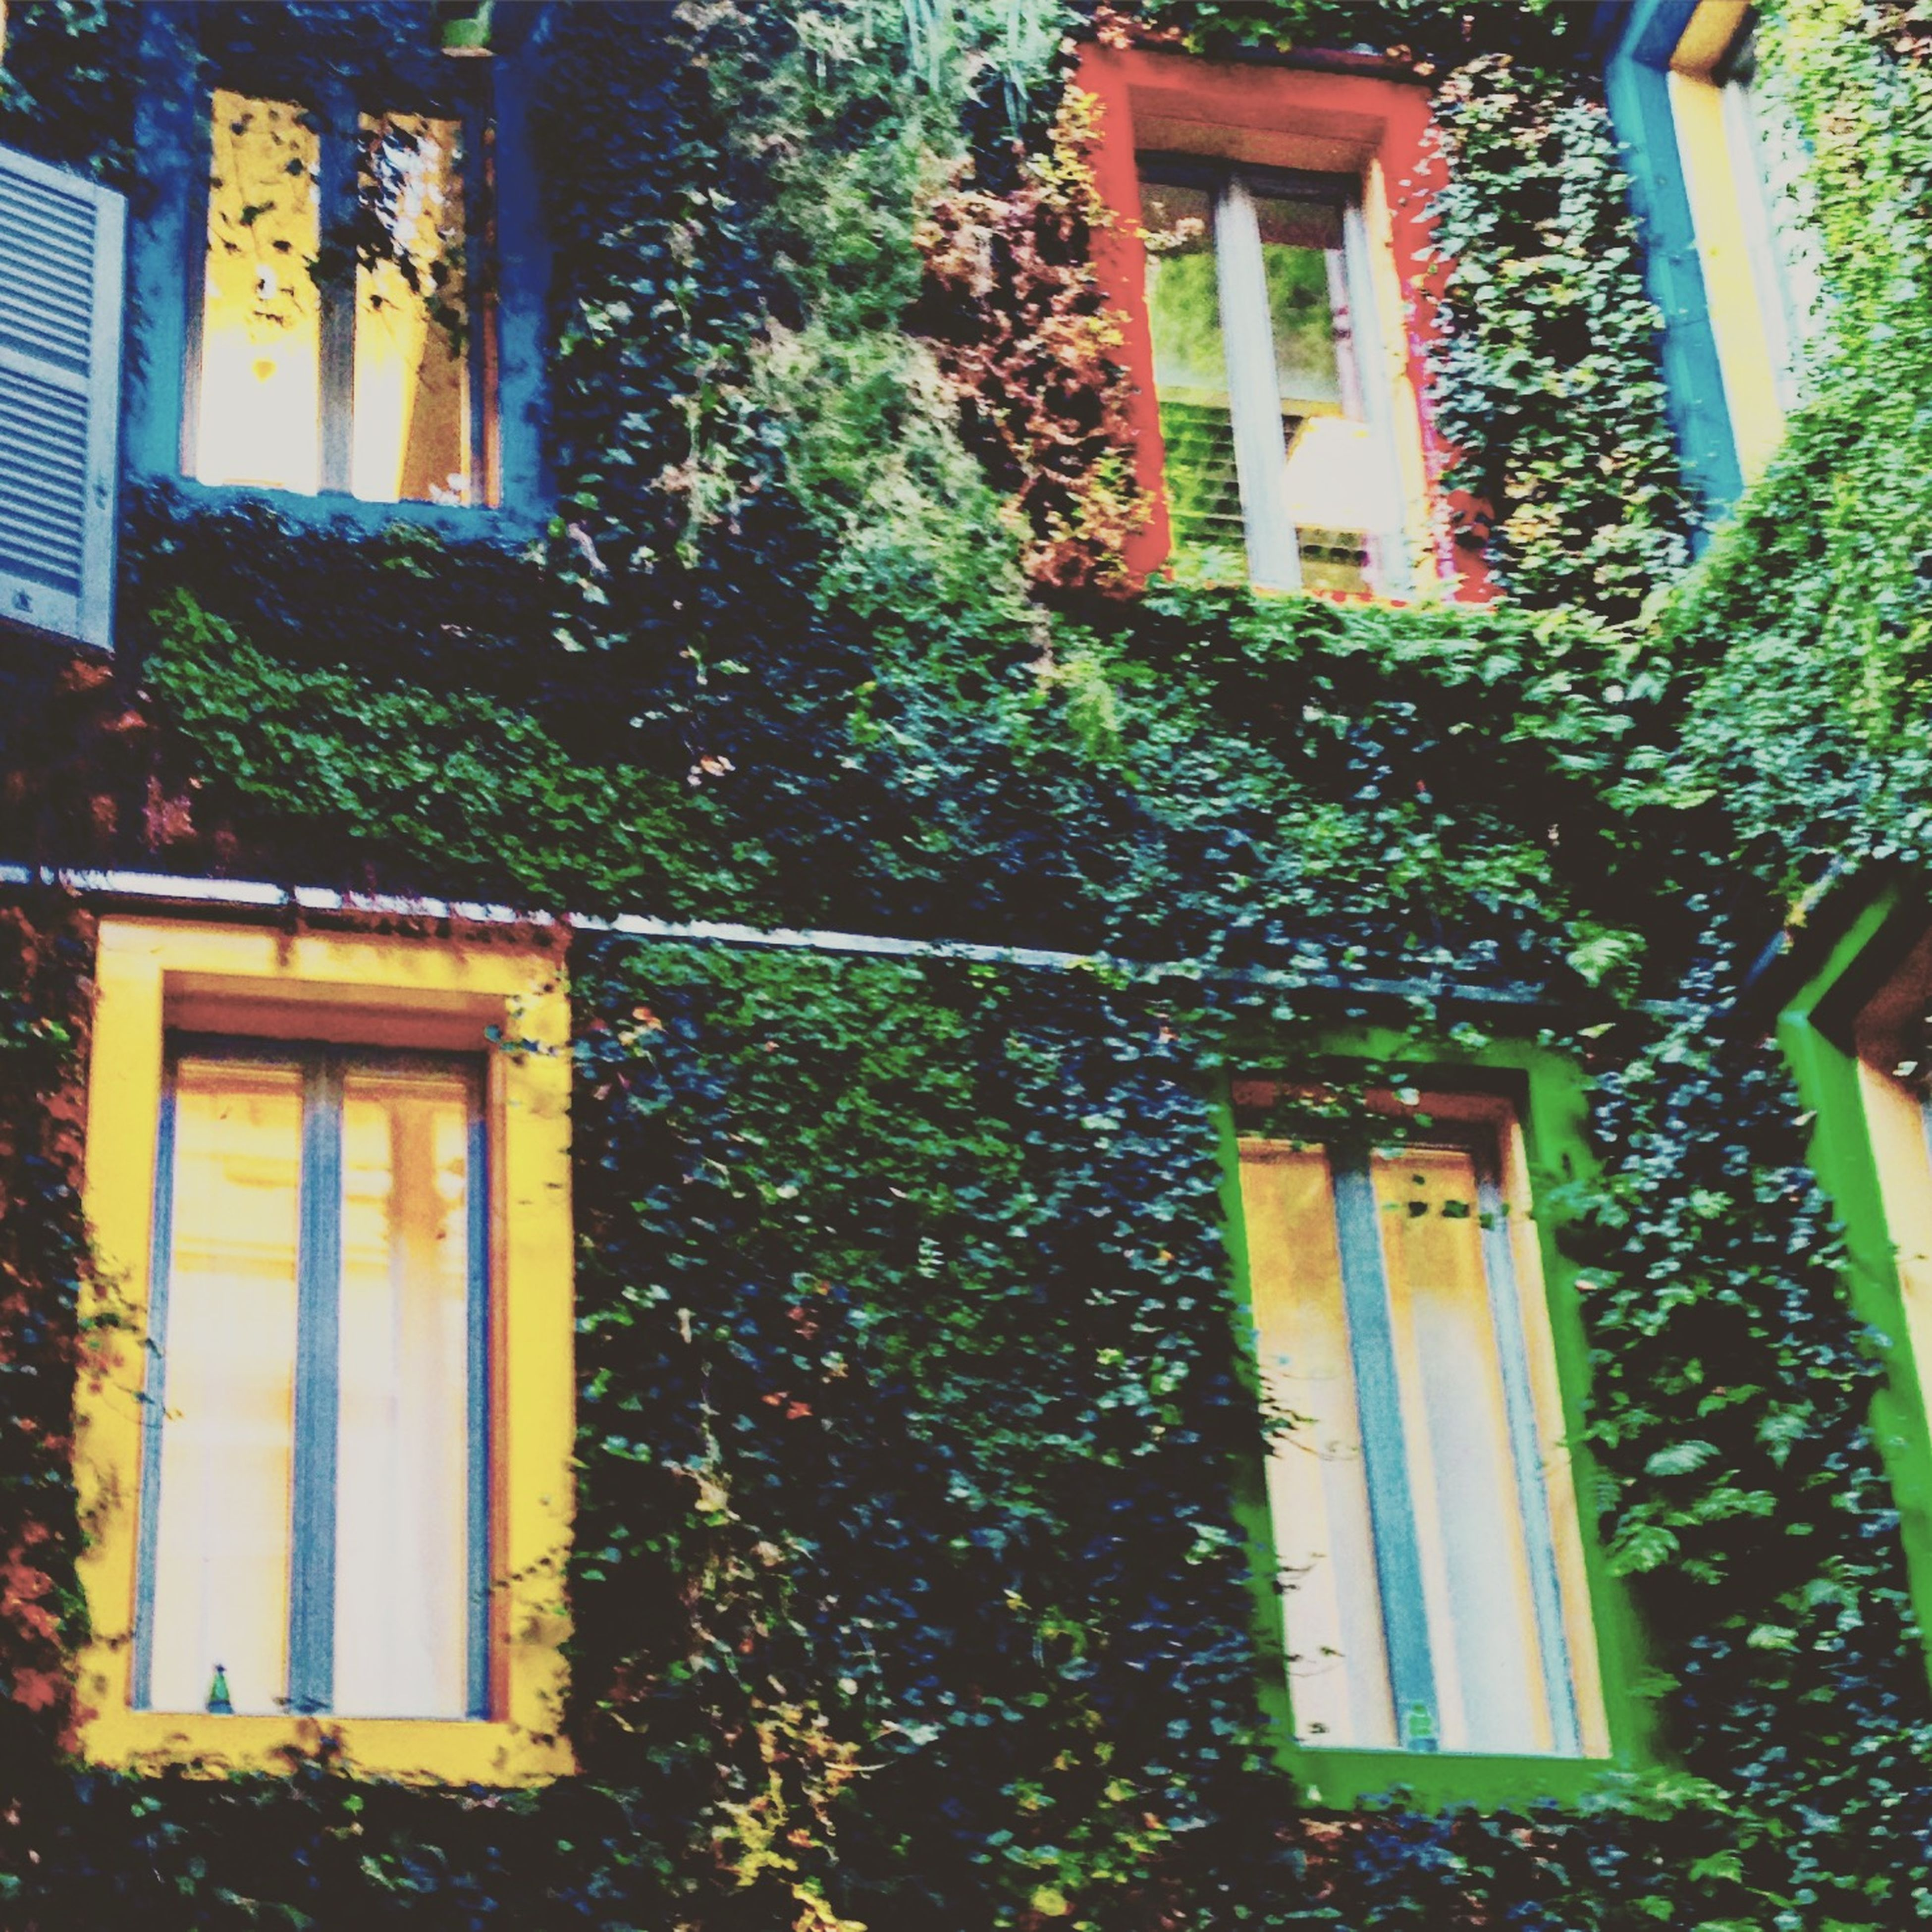 window, building exterior, architecture, built structure, house, residential building, residential structure, growth, ivy, tree, plant, door, potted plant, no people, balcony, day, closed, outdoors, facade, full frame